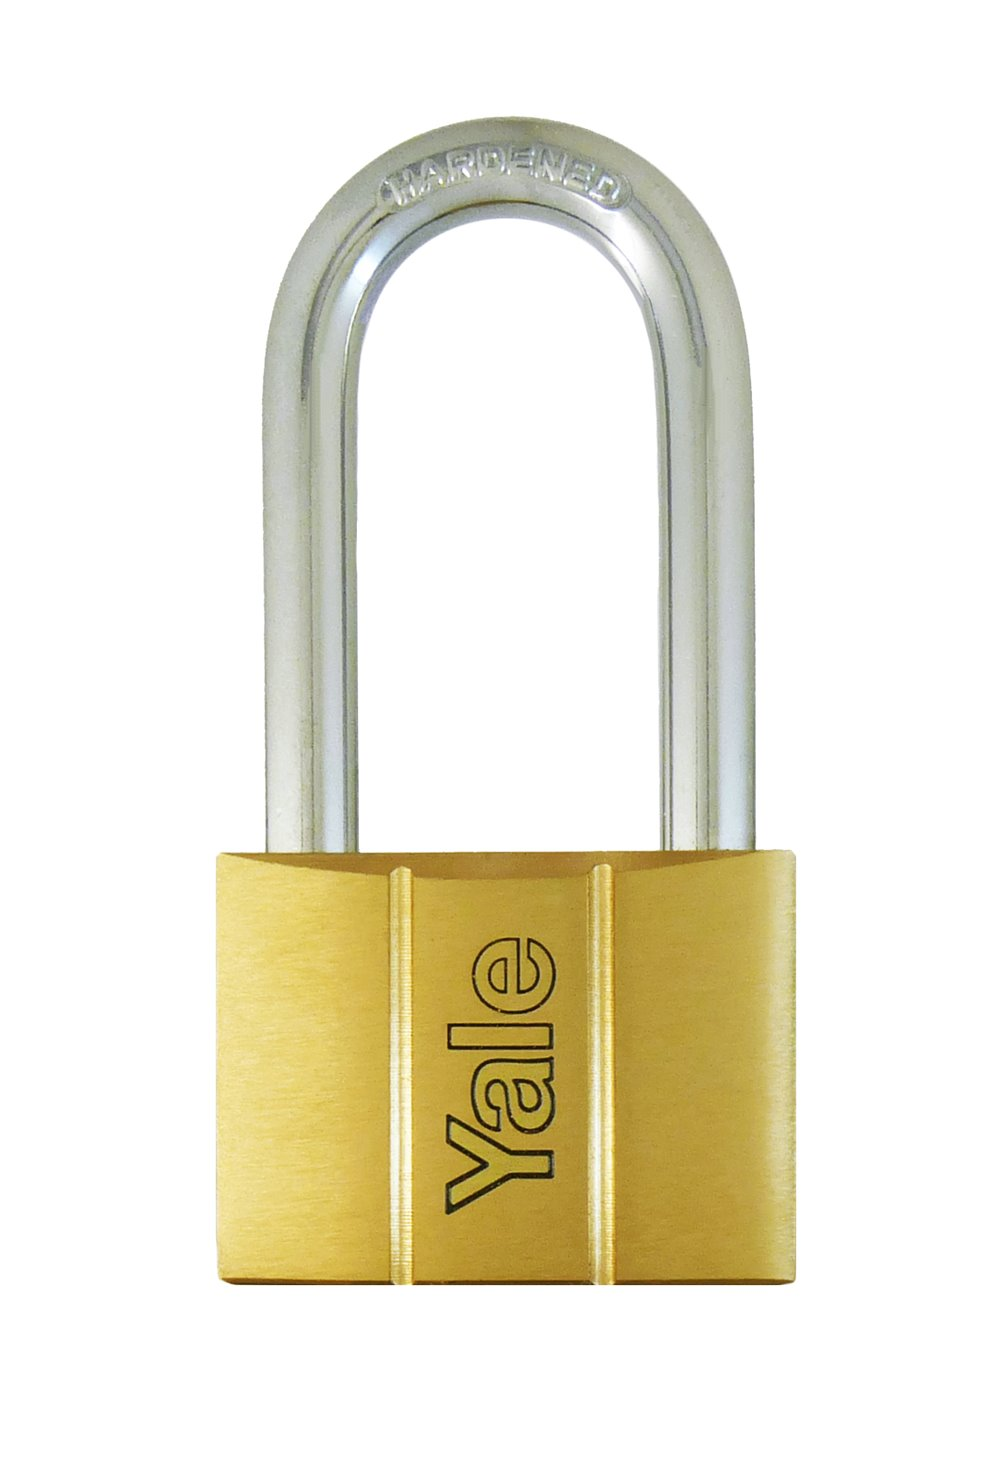 Y140/60LS - Yale 140 Series Long Shackle Brass Padlock 60mm